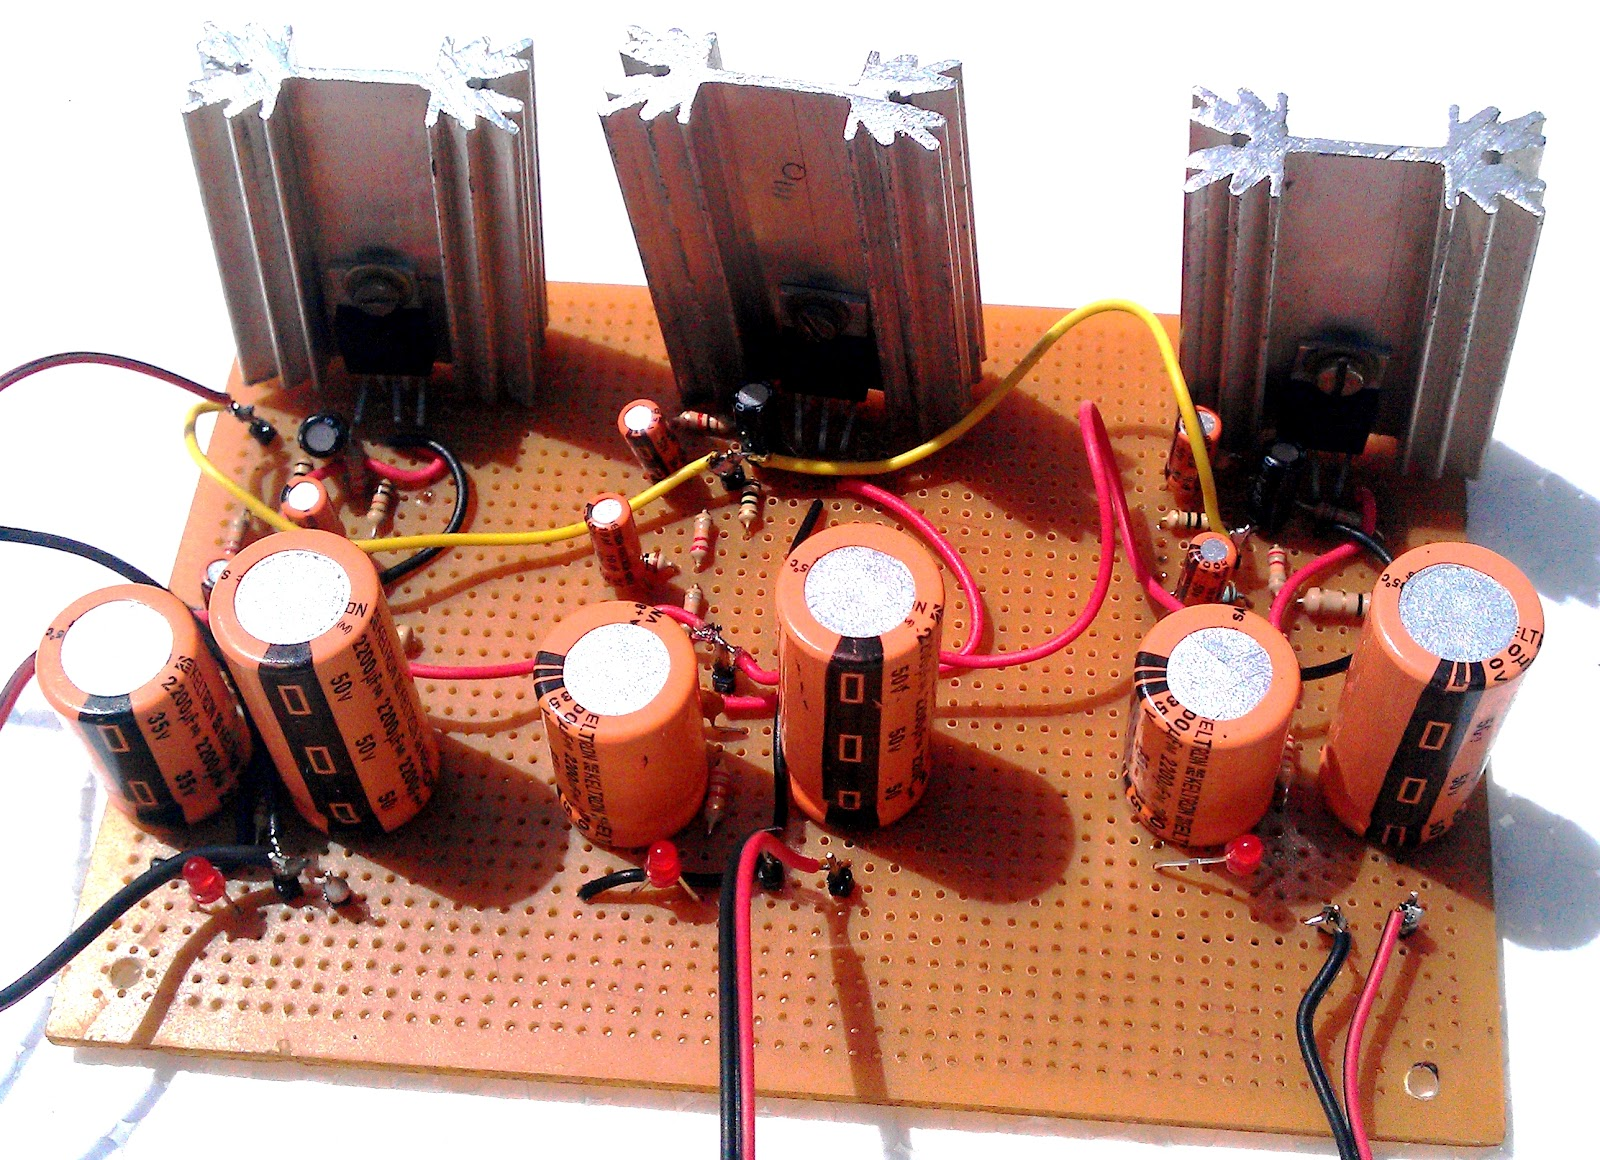 Ham Radio Mipl Audio Power Amplifier Frequency 20w Based Lm1875 But With Just 4 Speakers And 2 Circuits The Specification Was Met Done Here Is Pic Of